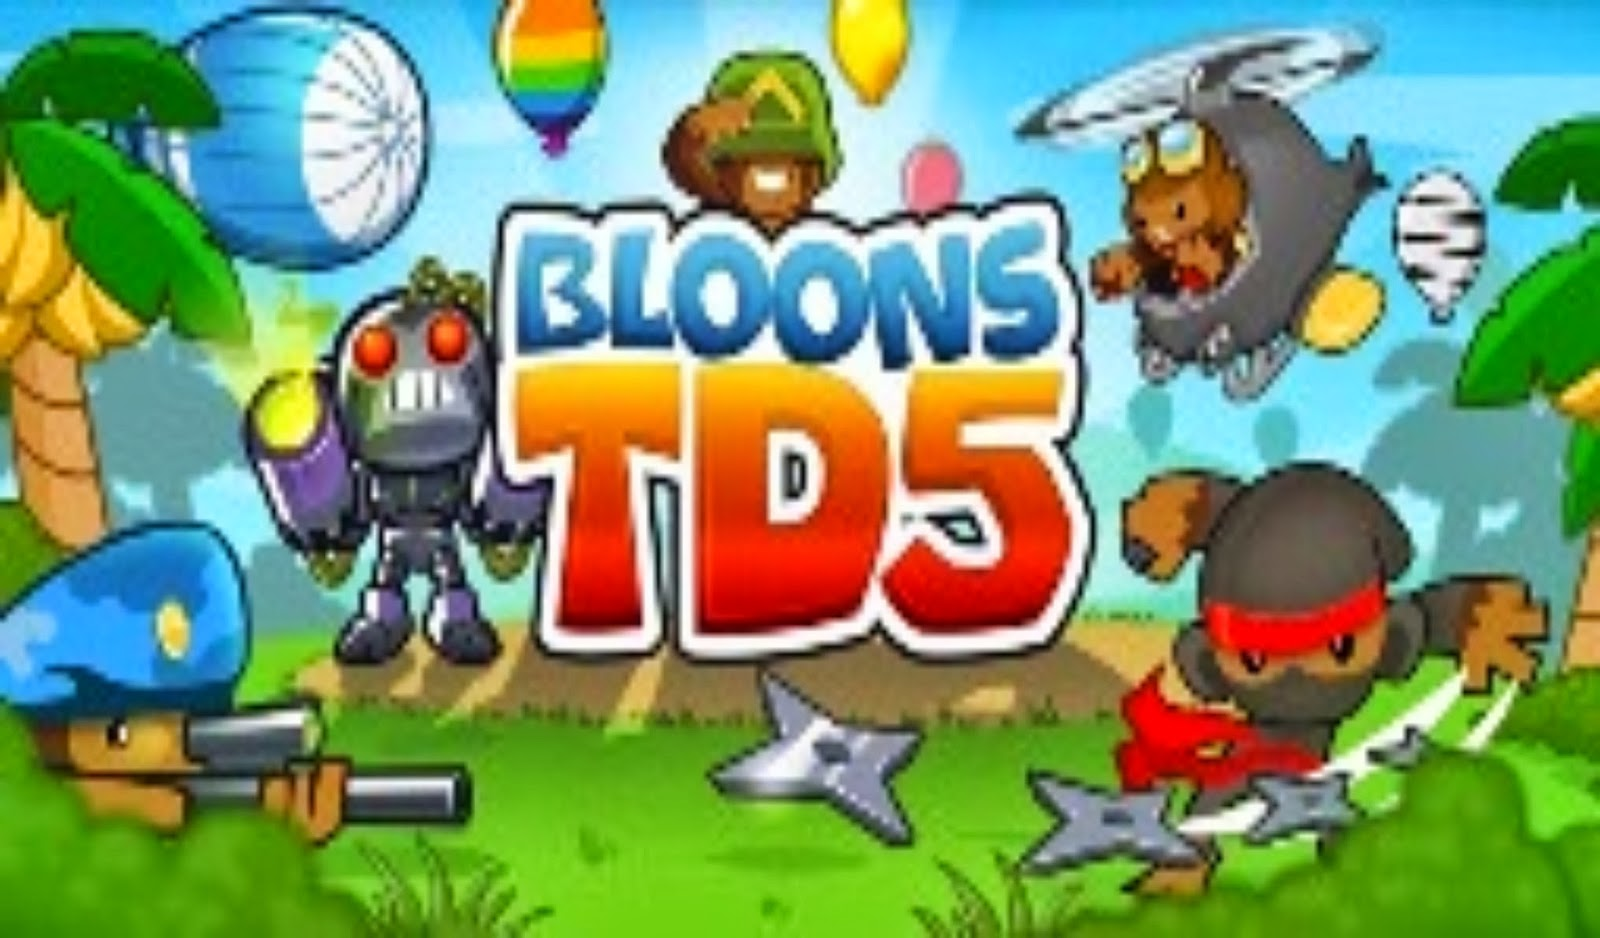 Bloons td 5 apk sd data android games download for Free balloon games